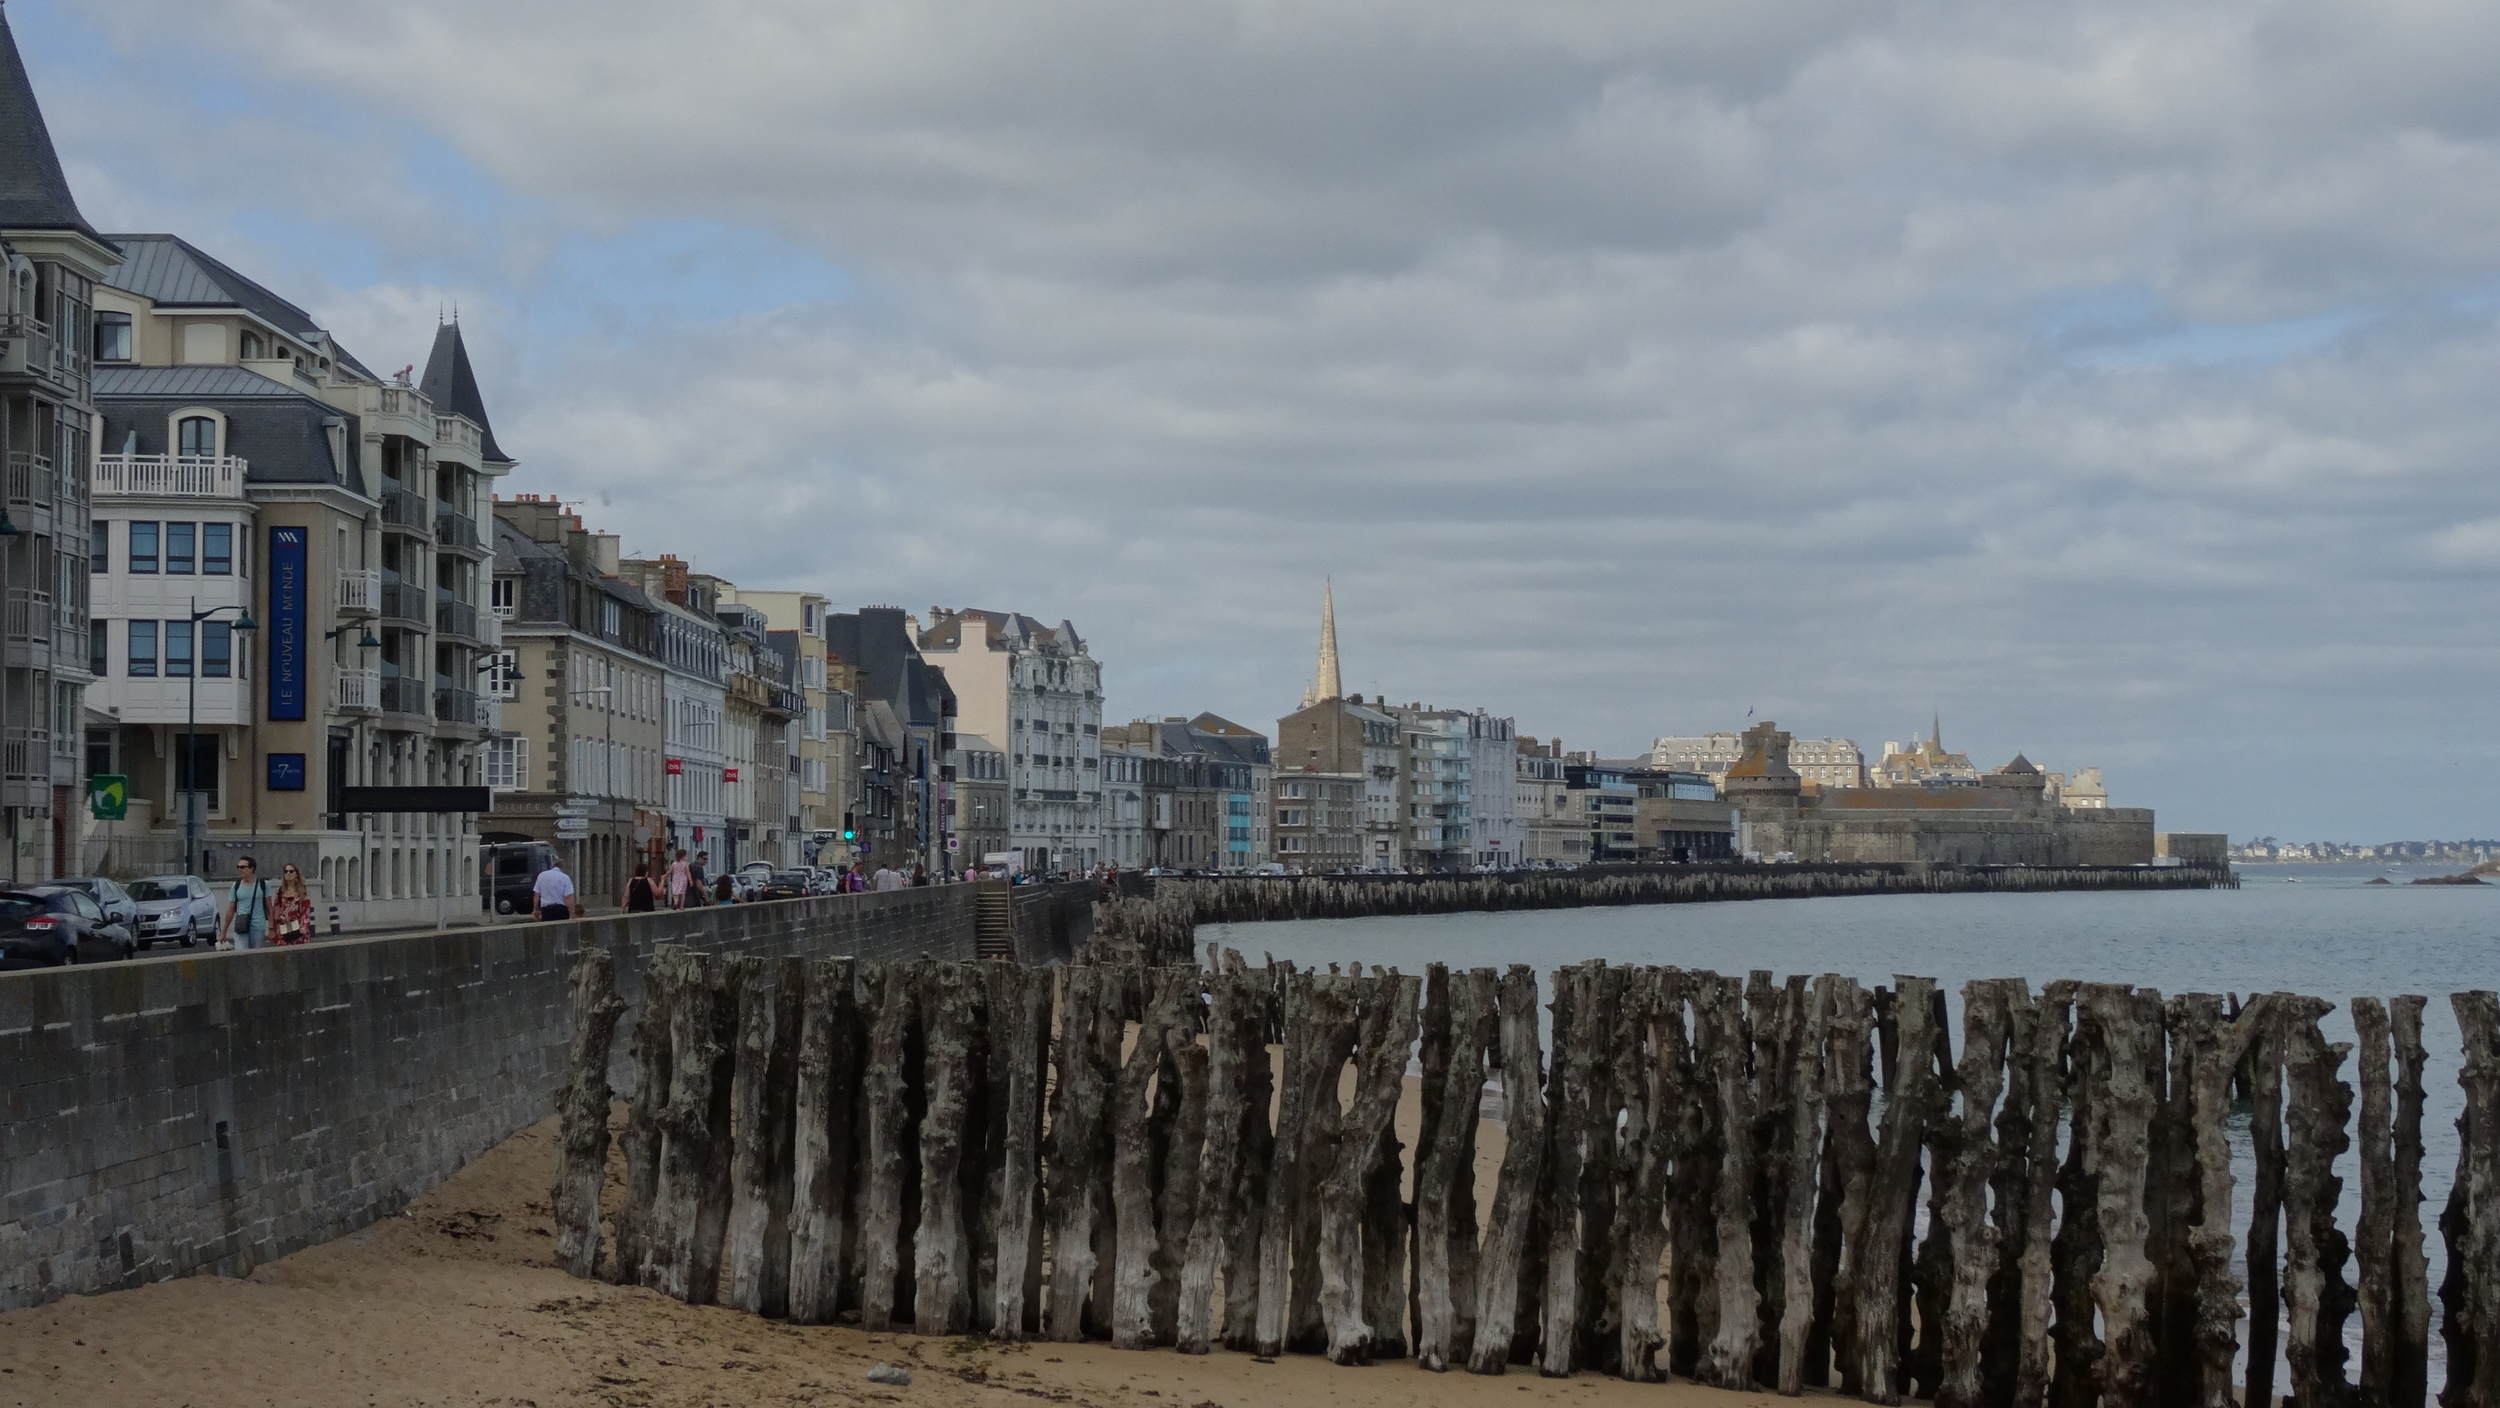 St. Malopromenade. I never did find out what those old posts were. Maybe the remains of an old dock?